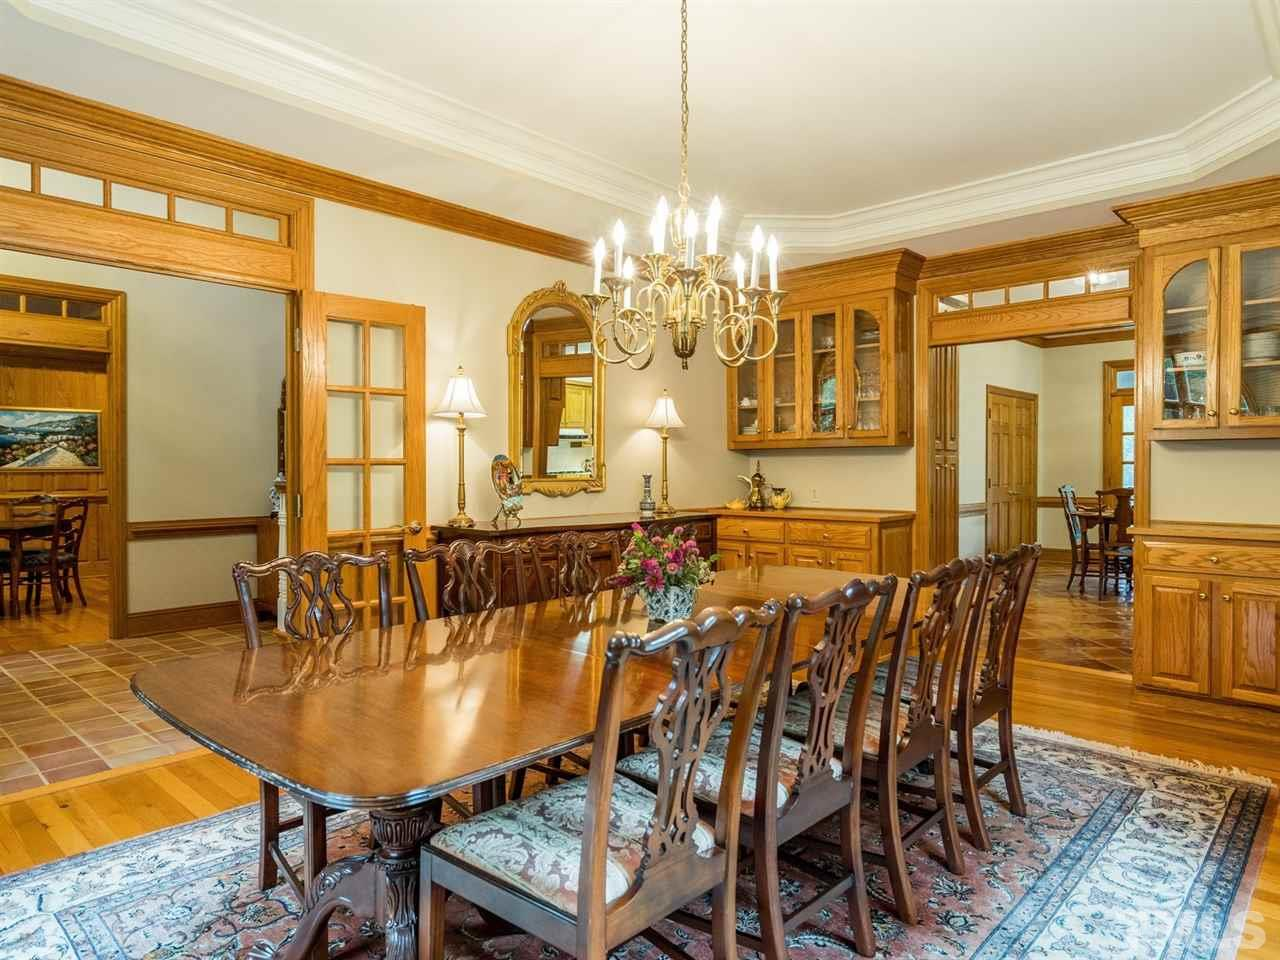 Imagine hosting holiday meals or family celebrations in this elegant room.  The trey ceiling and wainscoting add charm and character.